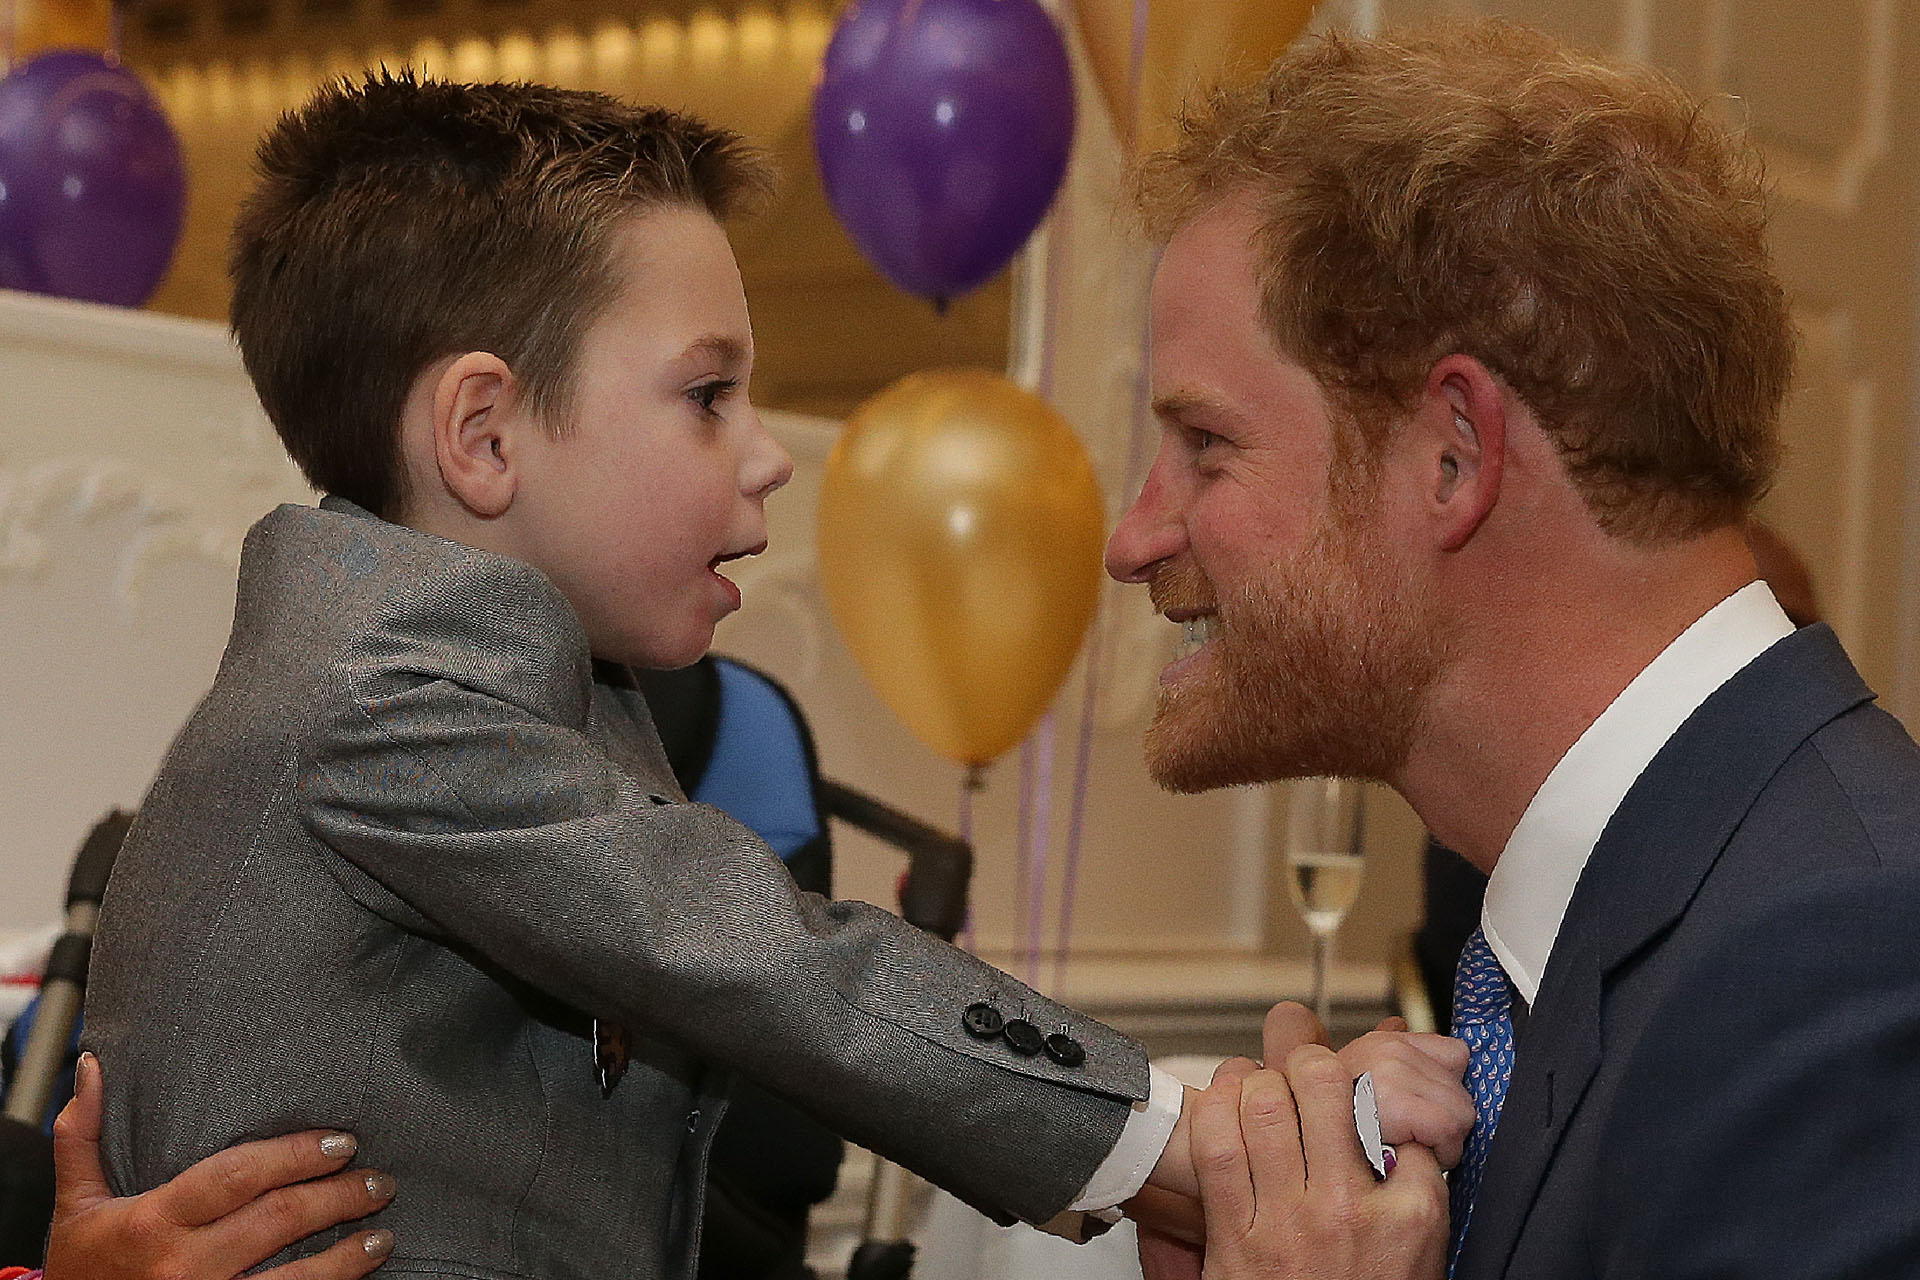 Prince Harry is hugged at WellChild Award ceremony